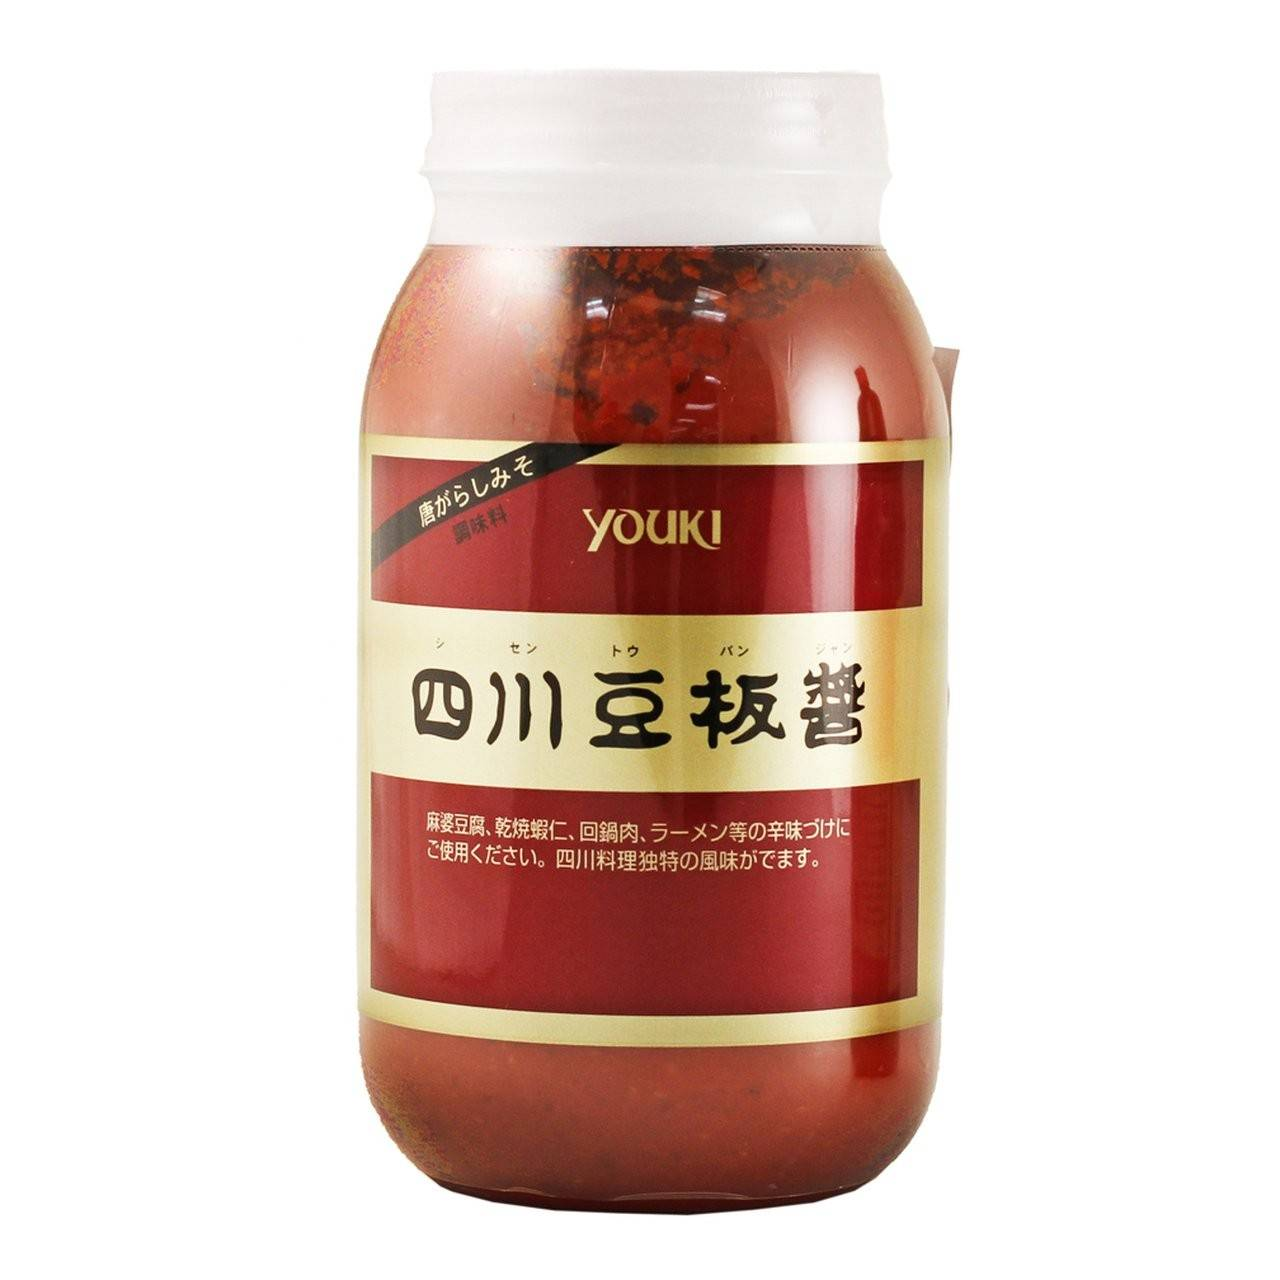 Youki Tobanjyan Chili Bean Paste 2.2lbs (1kg) (SKU: 6615)